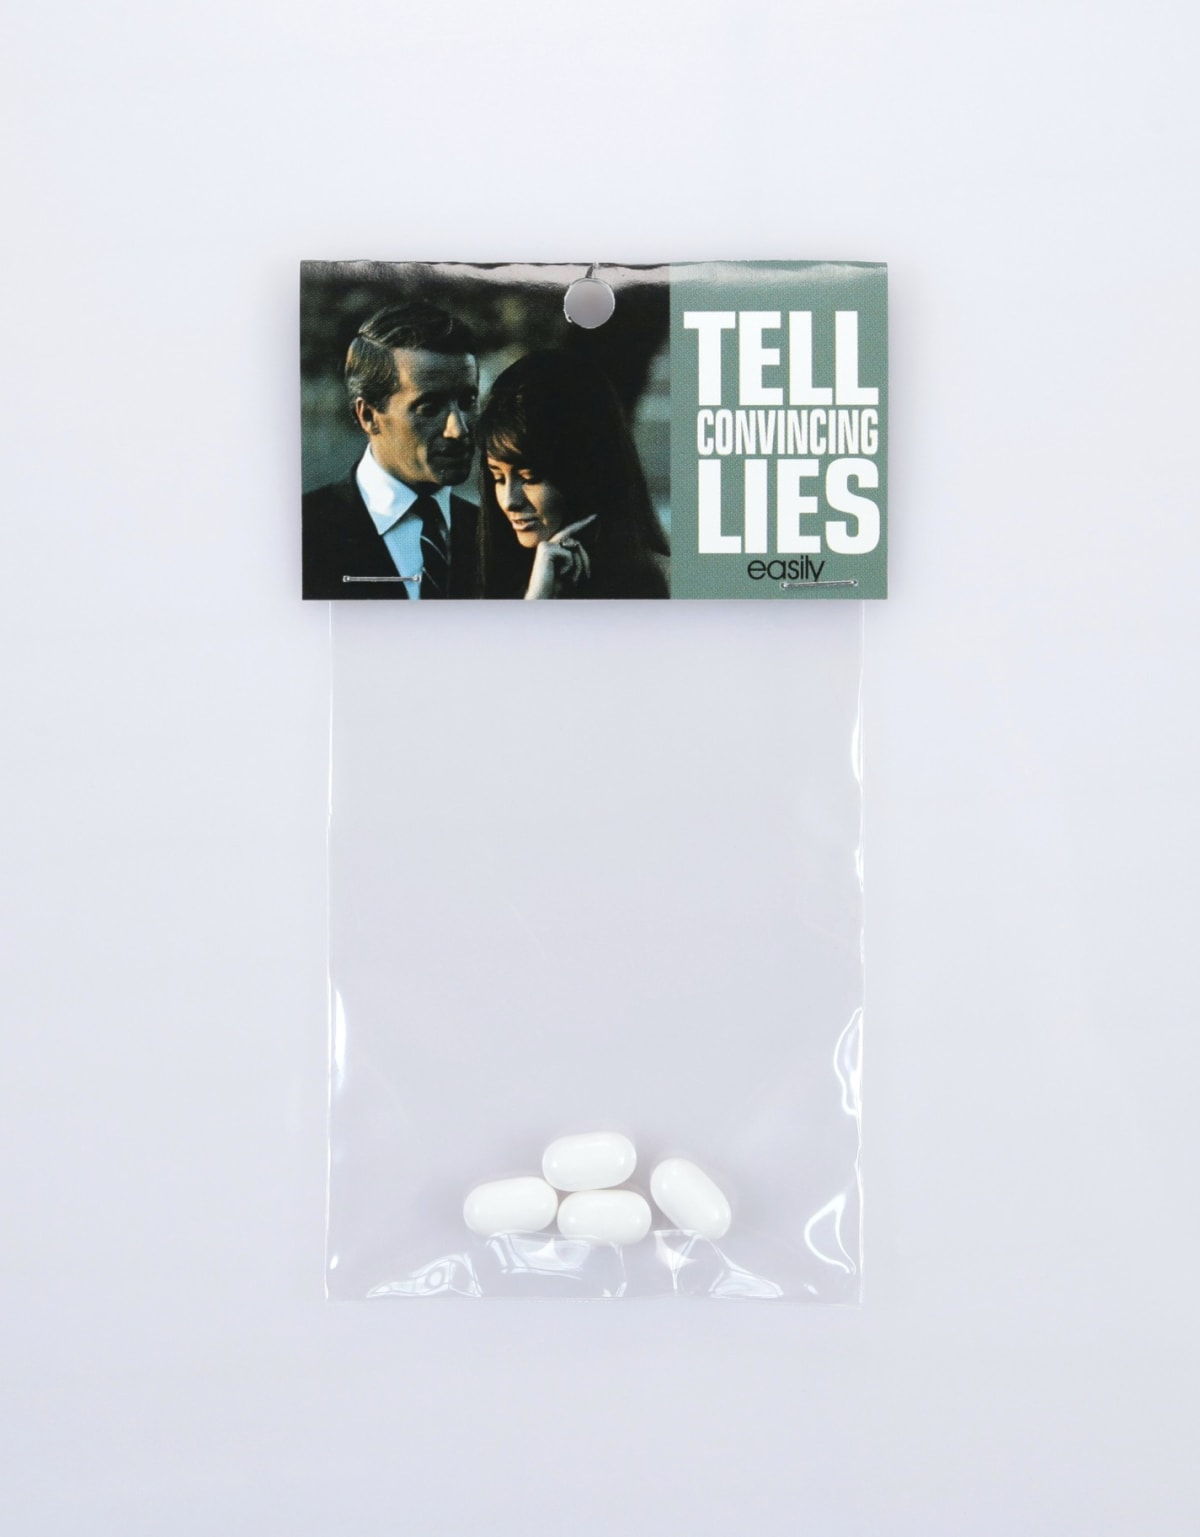 Tell convincing lies